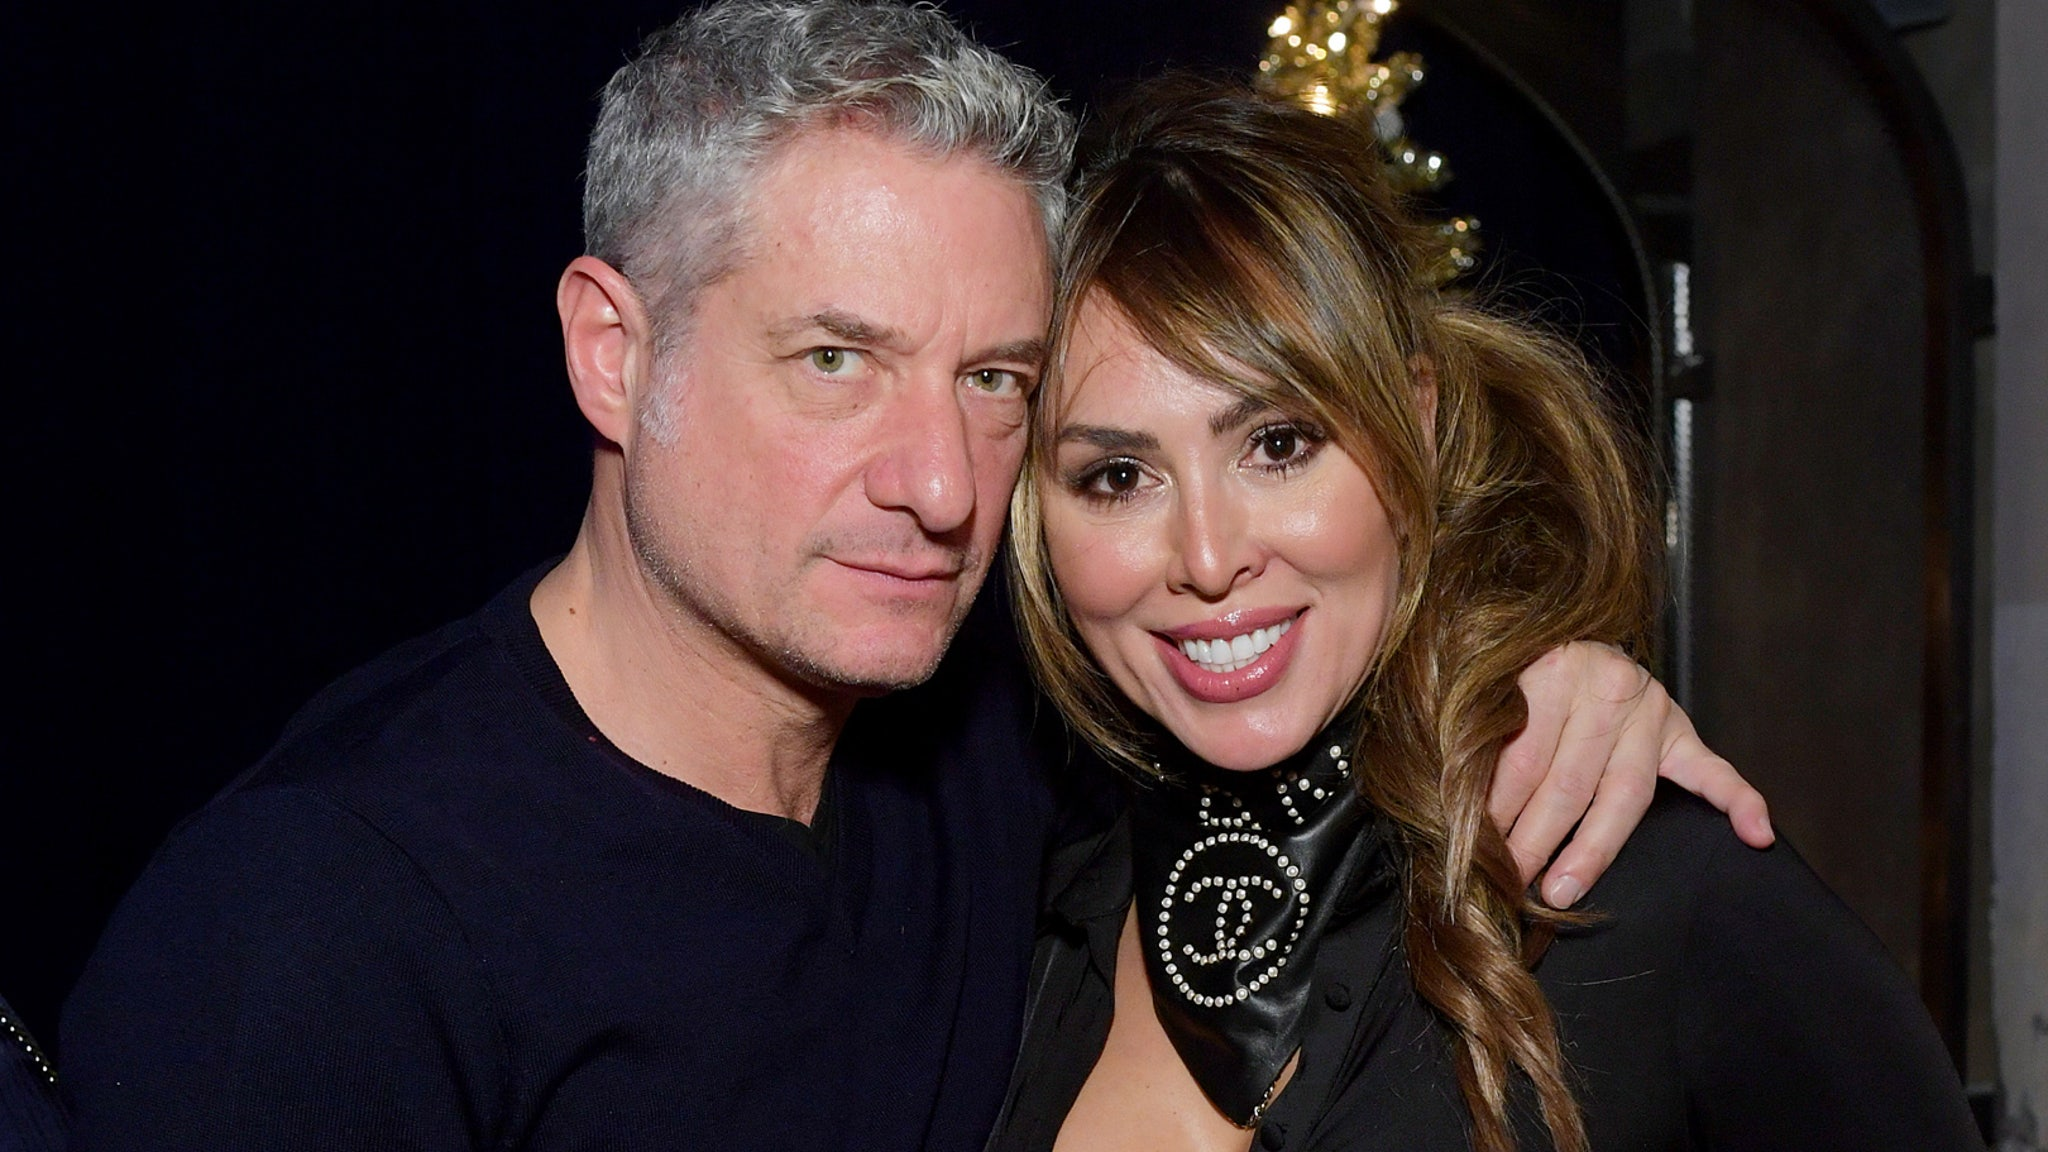 RHOC's Kelly Dodd and her husband Rick Leventhal contracted Lyme disease